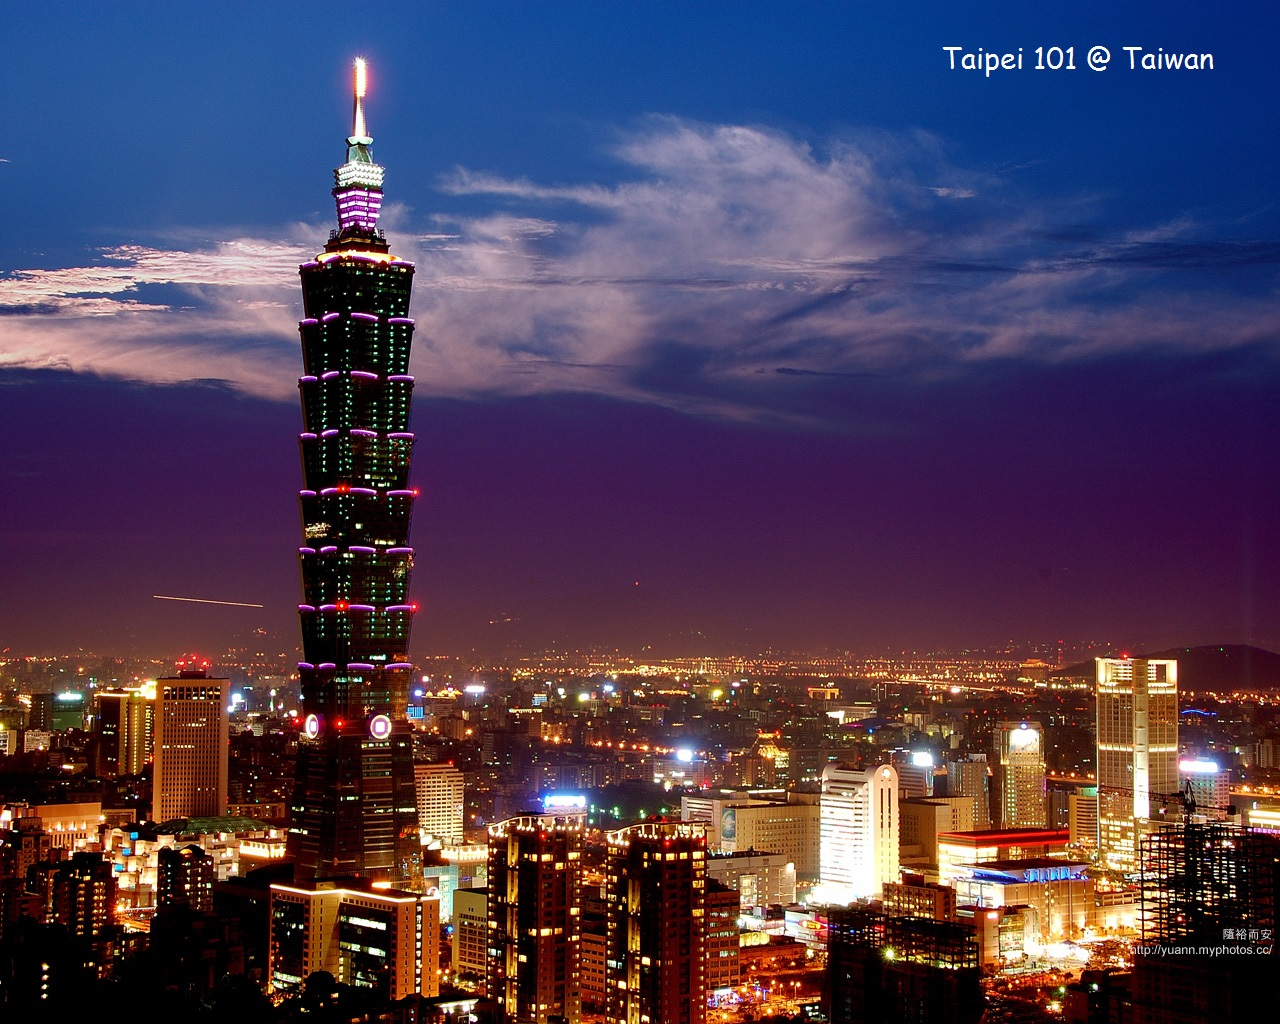 taipei 101 @ taiwan – compact resources